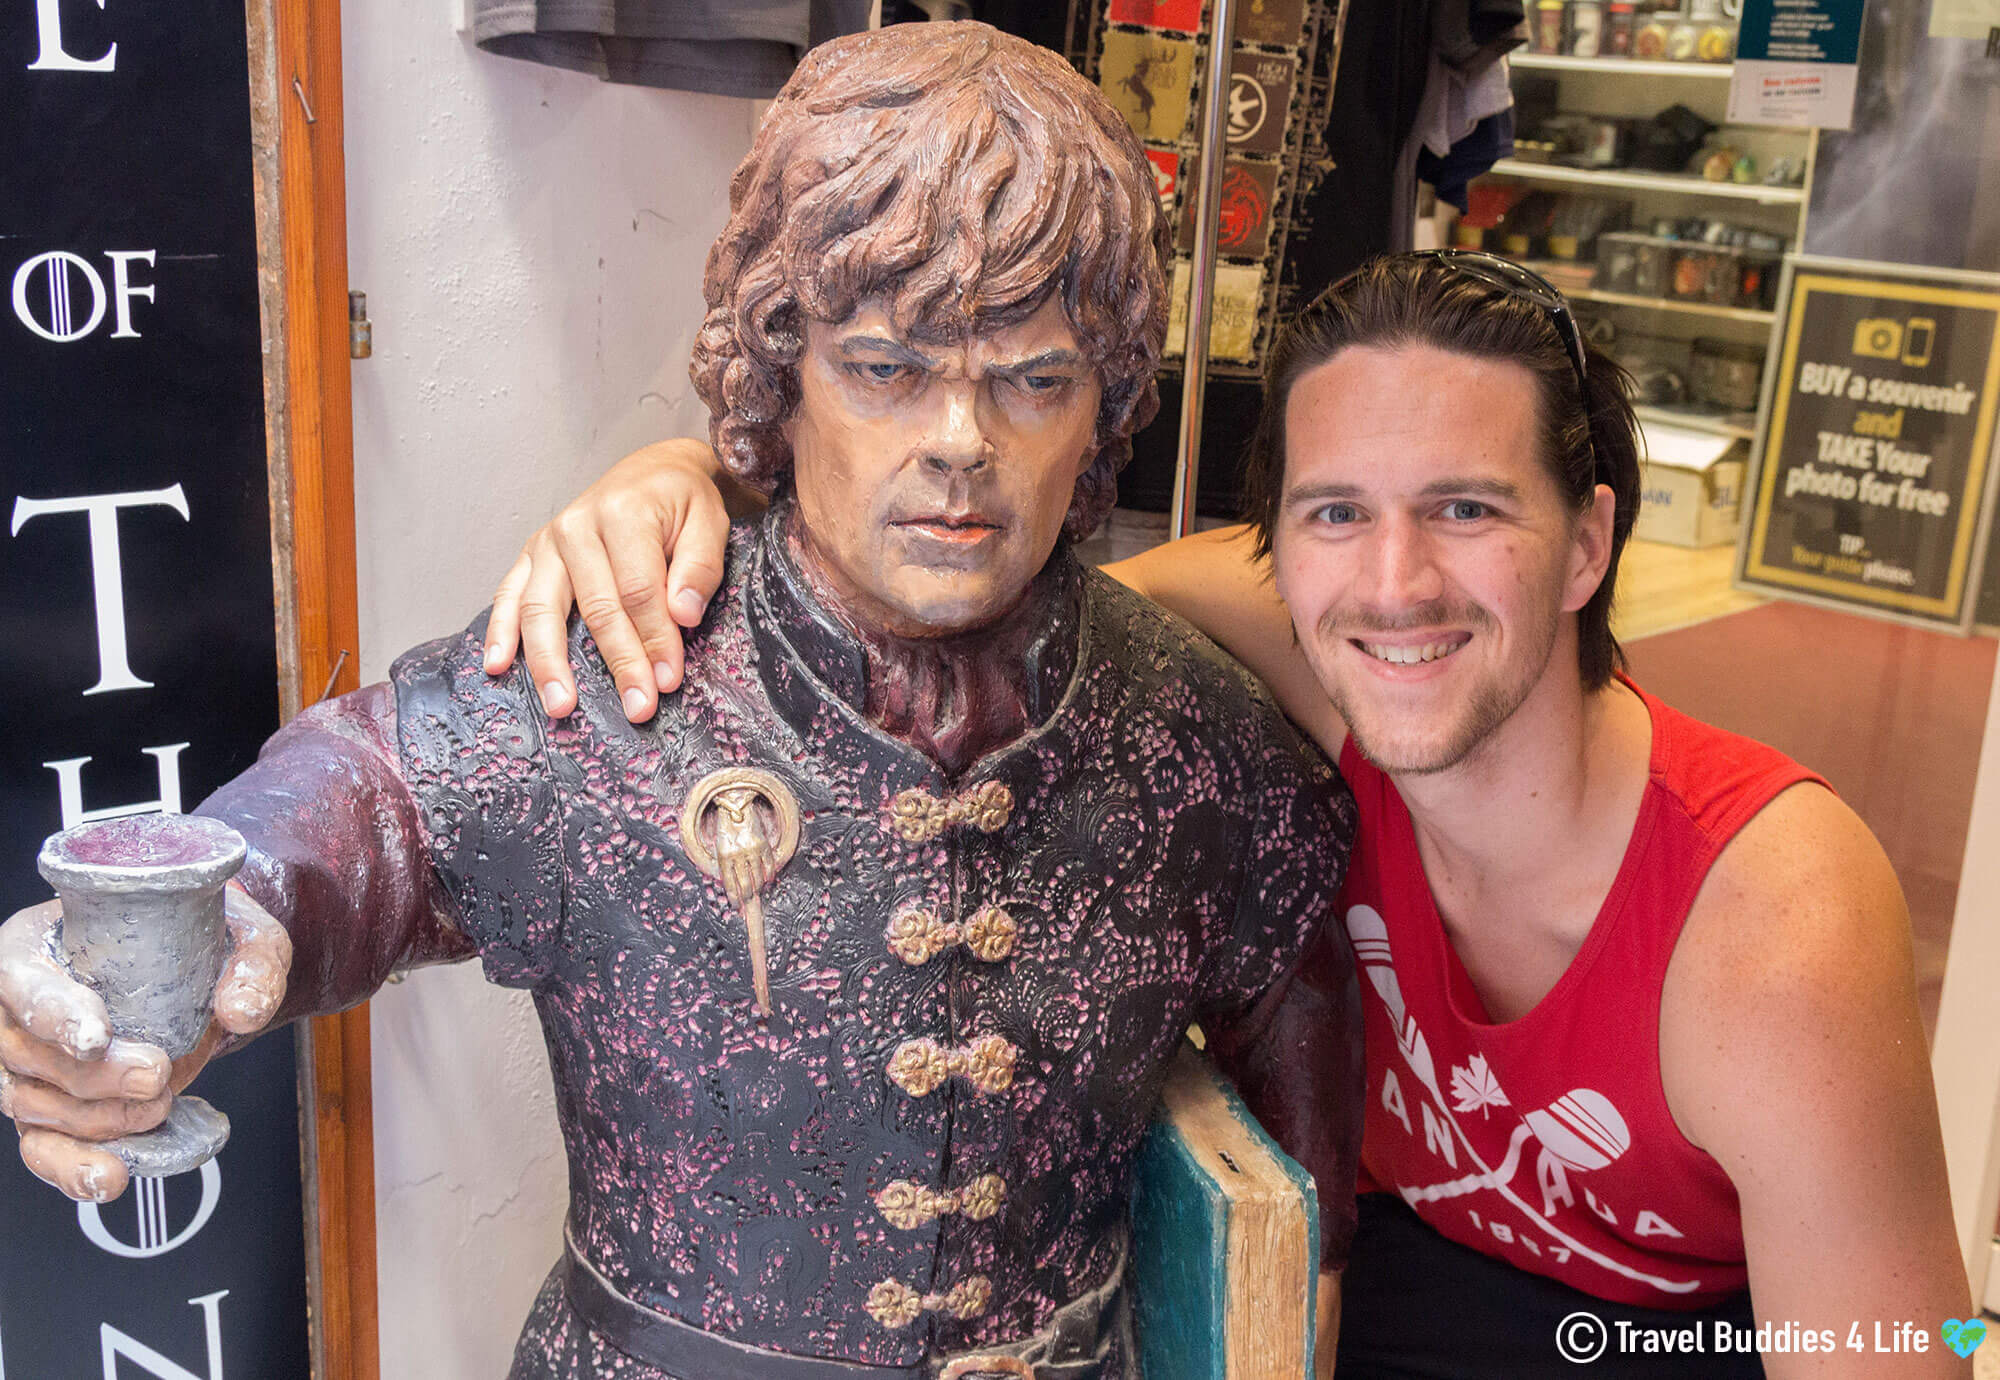 Joey with Tyrean Lannister Statue in Croatia